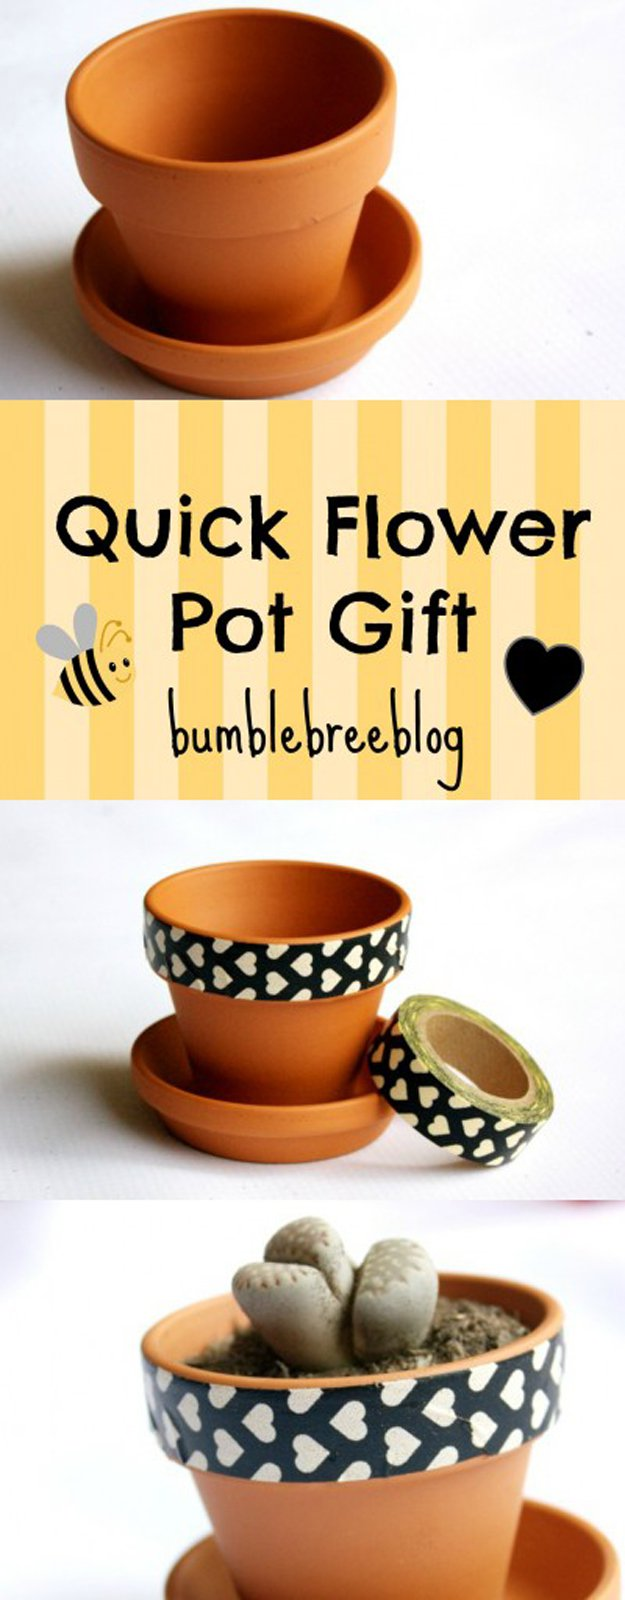 Washi Tape Crafts - DIY Quick Flower Pot Gift - Wall Art, Frames, Cards, Pencils, Room Decor and DIY Gifts, Back To School Supplies - Creative, Fun Craft Ideas for Teens, Tweens and Teenagers - Step by Step Tutorials and Instructions http://diyprojectsforteens.com/washi-tape-crafts